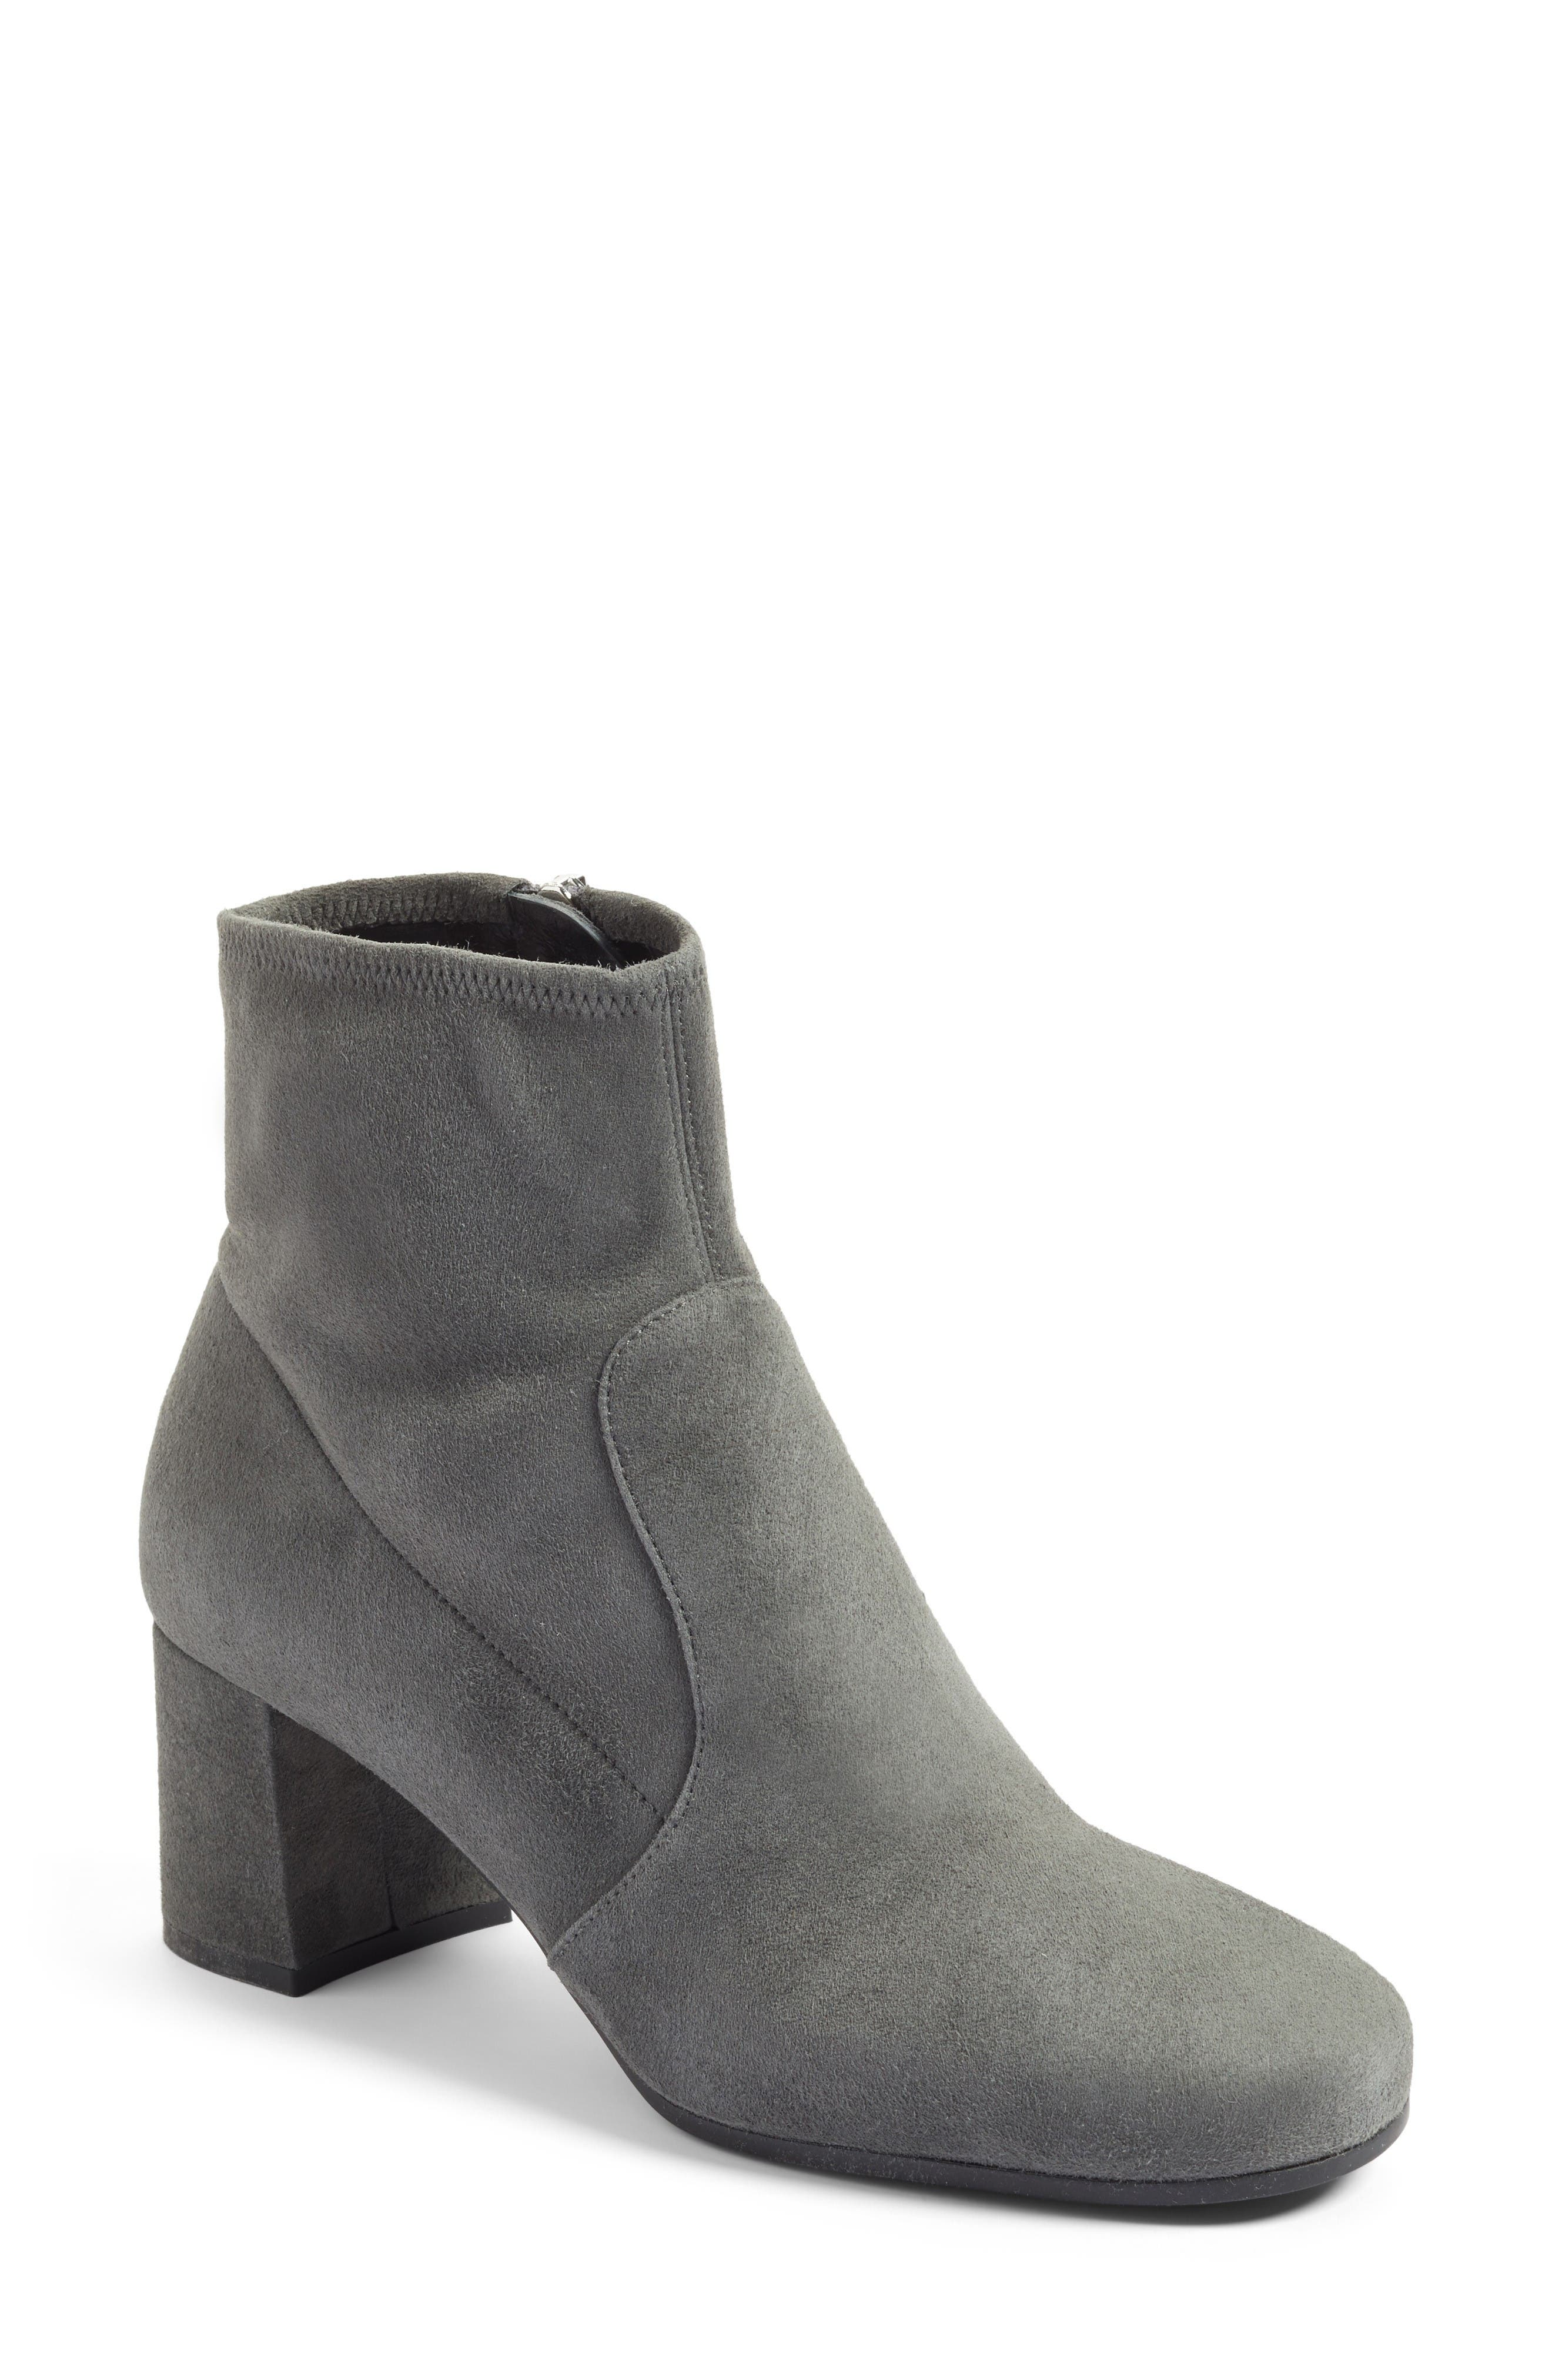 Prada Stretch Suede Ankle Boot (Women)